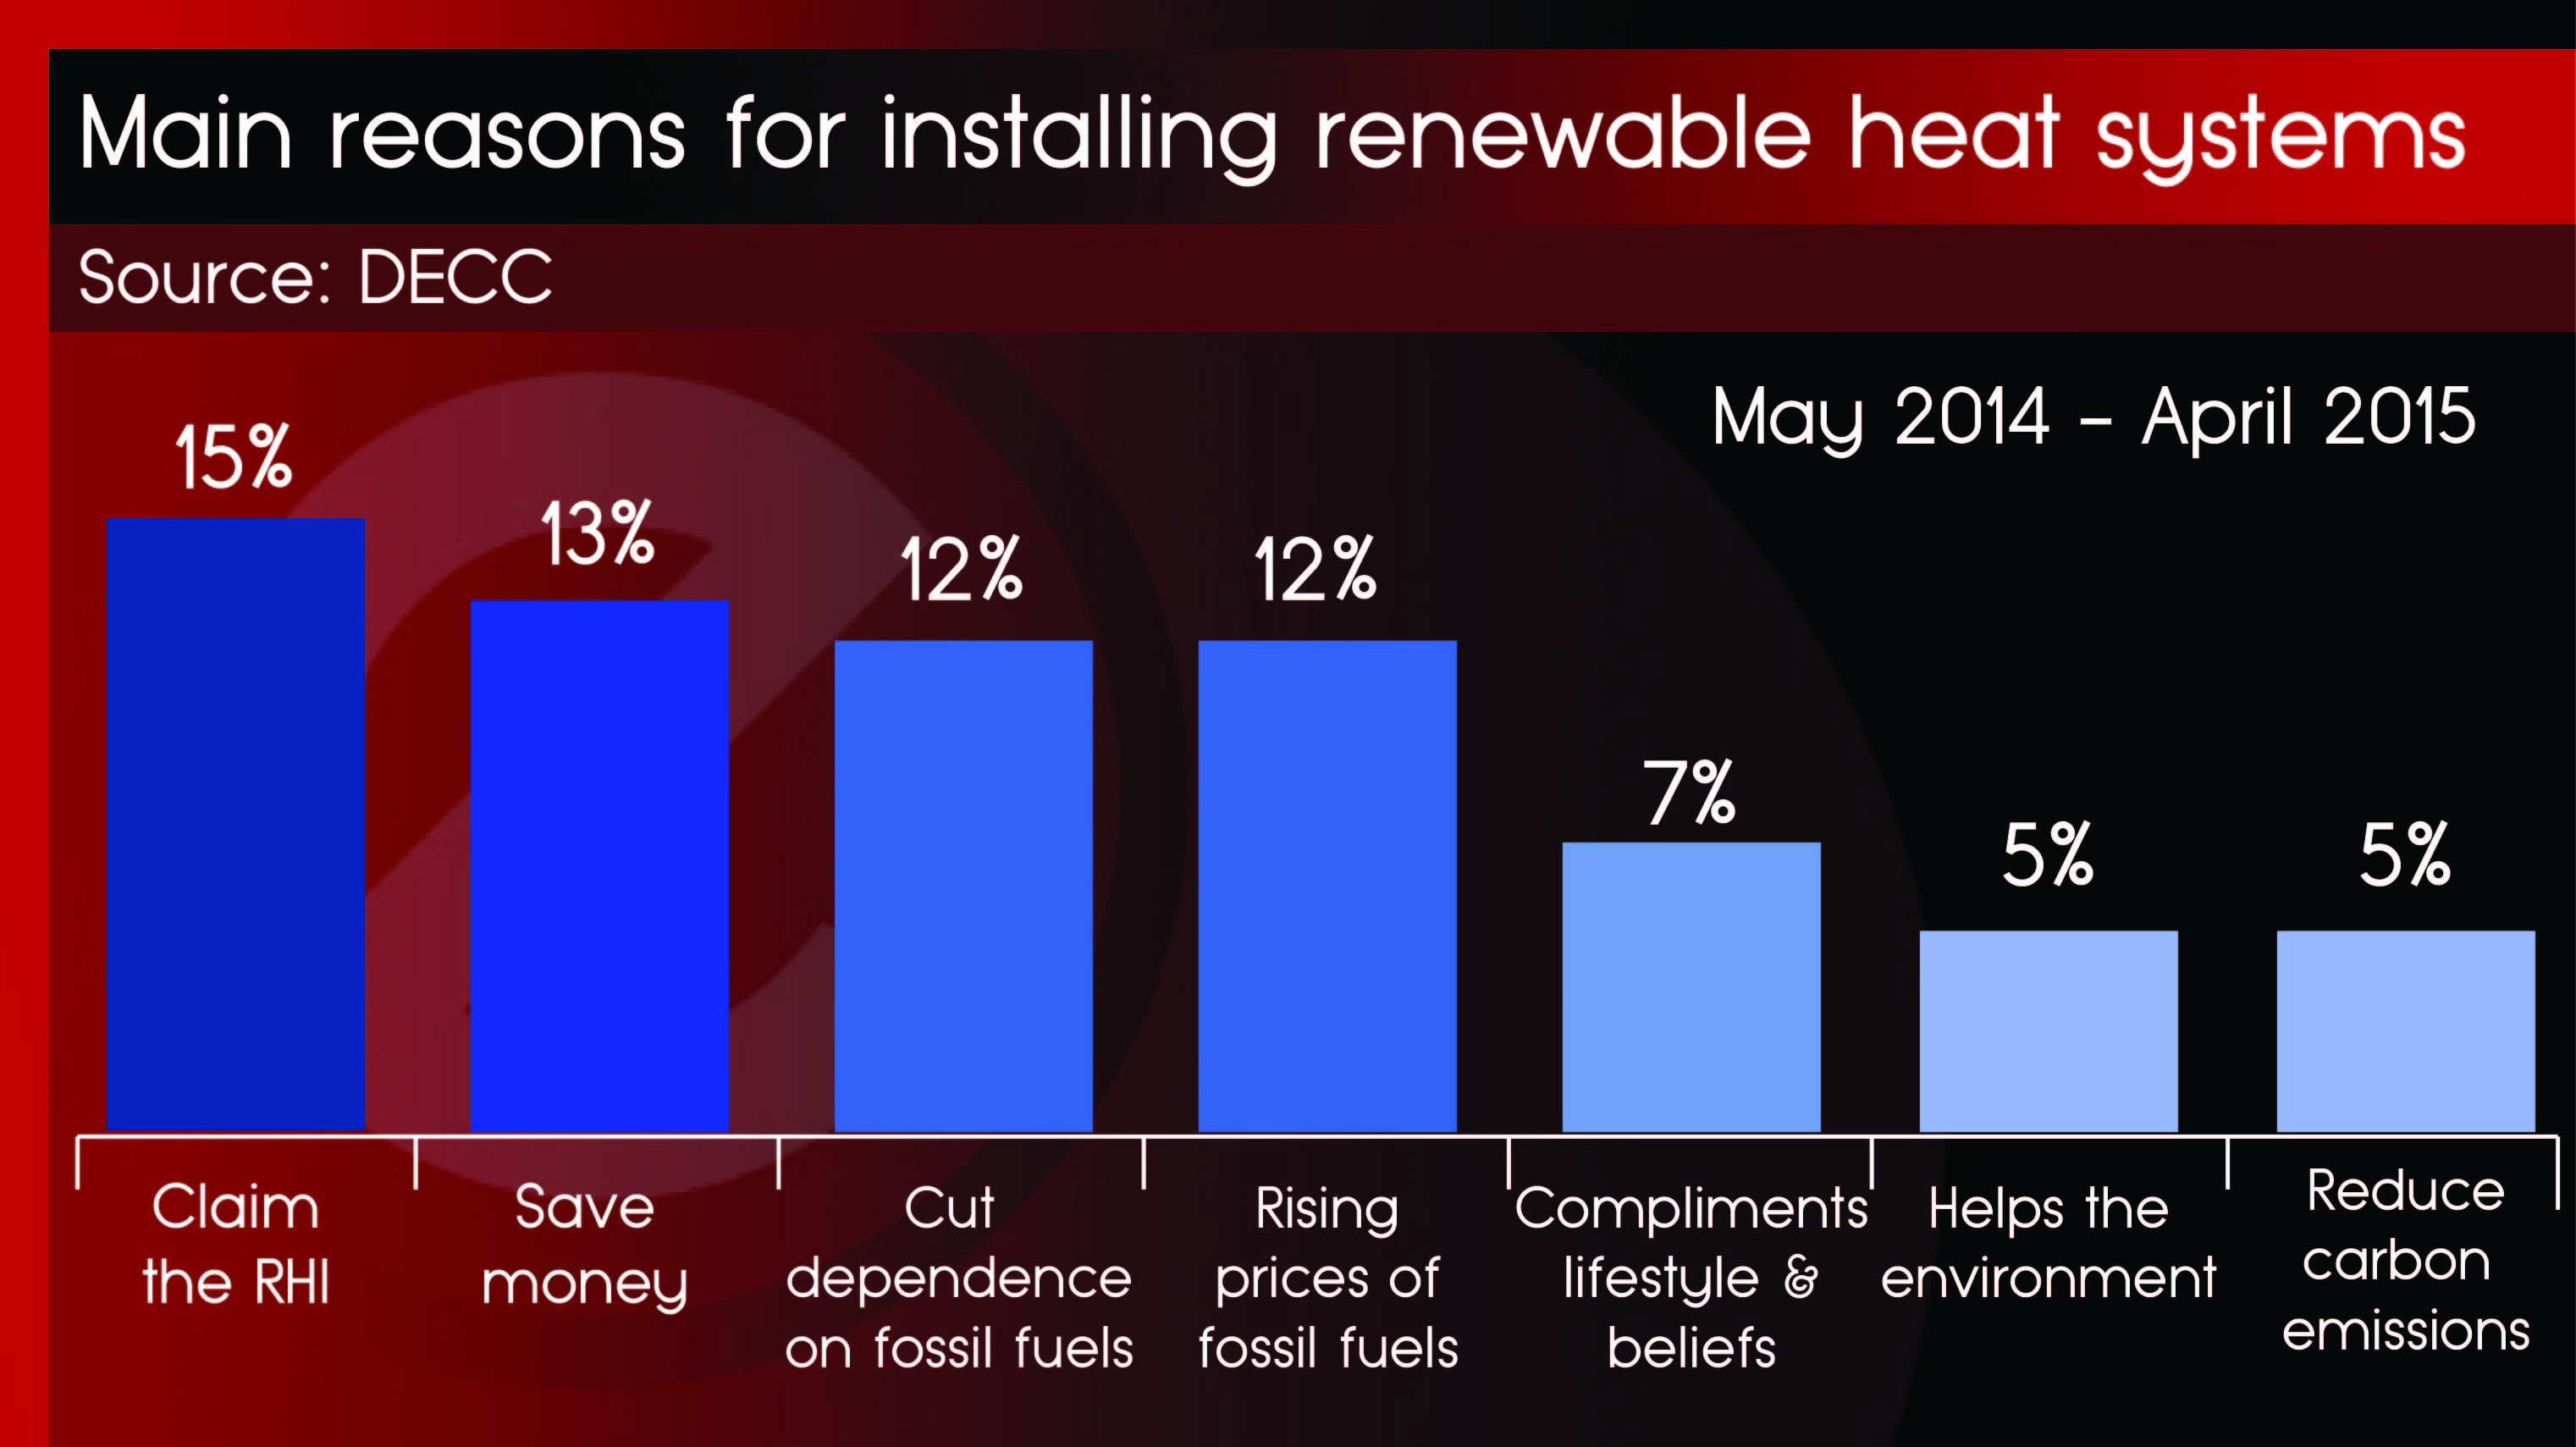 Reasons for installing renewable energy - 12th Feb 2016